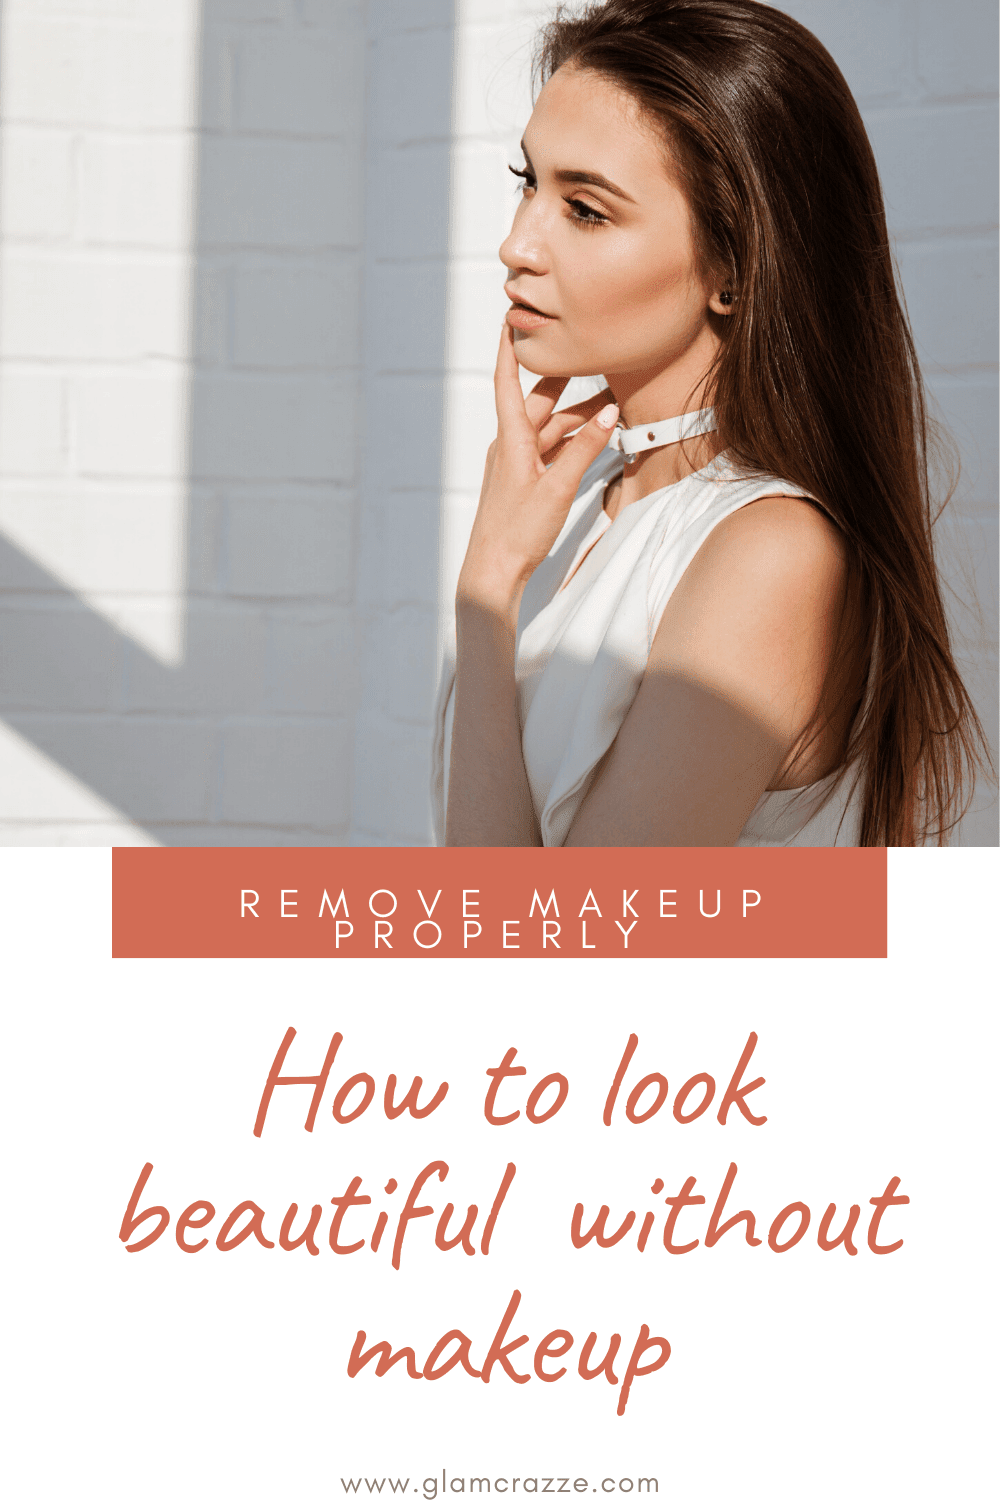 How to look beautiful without makeup removing makeup properly